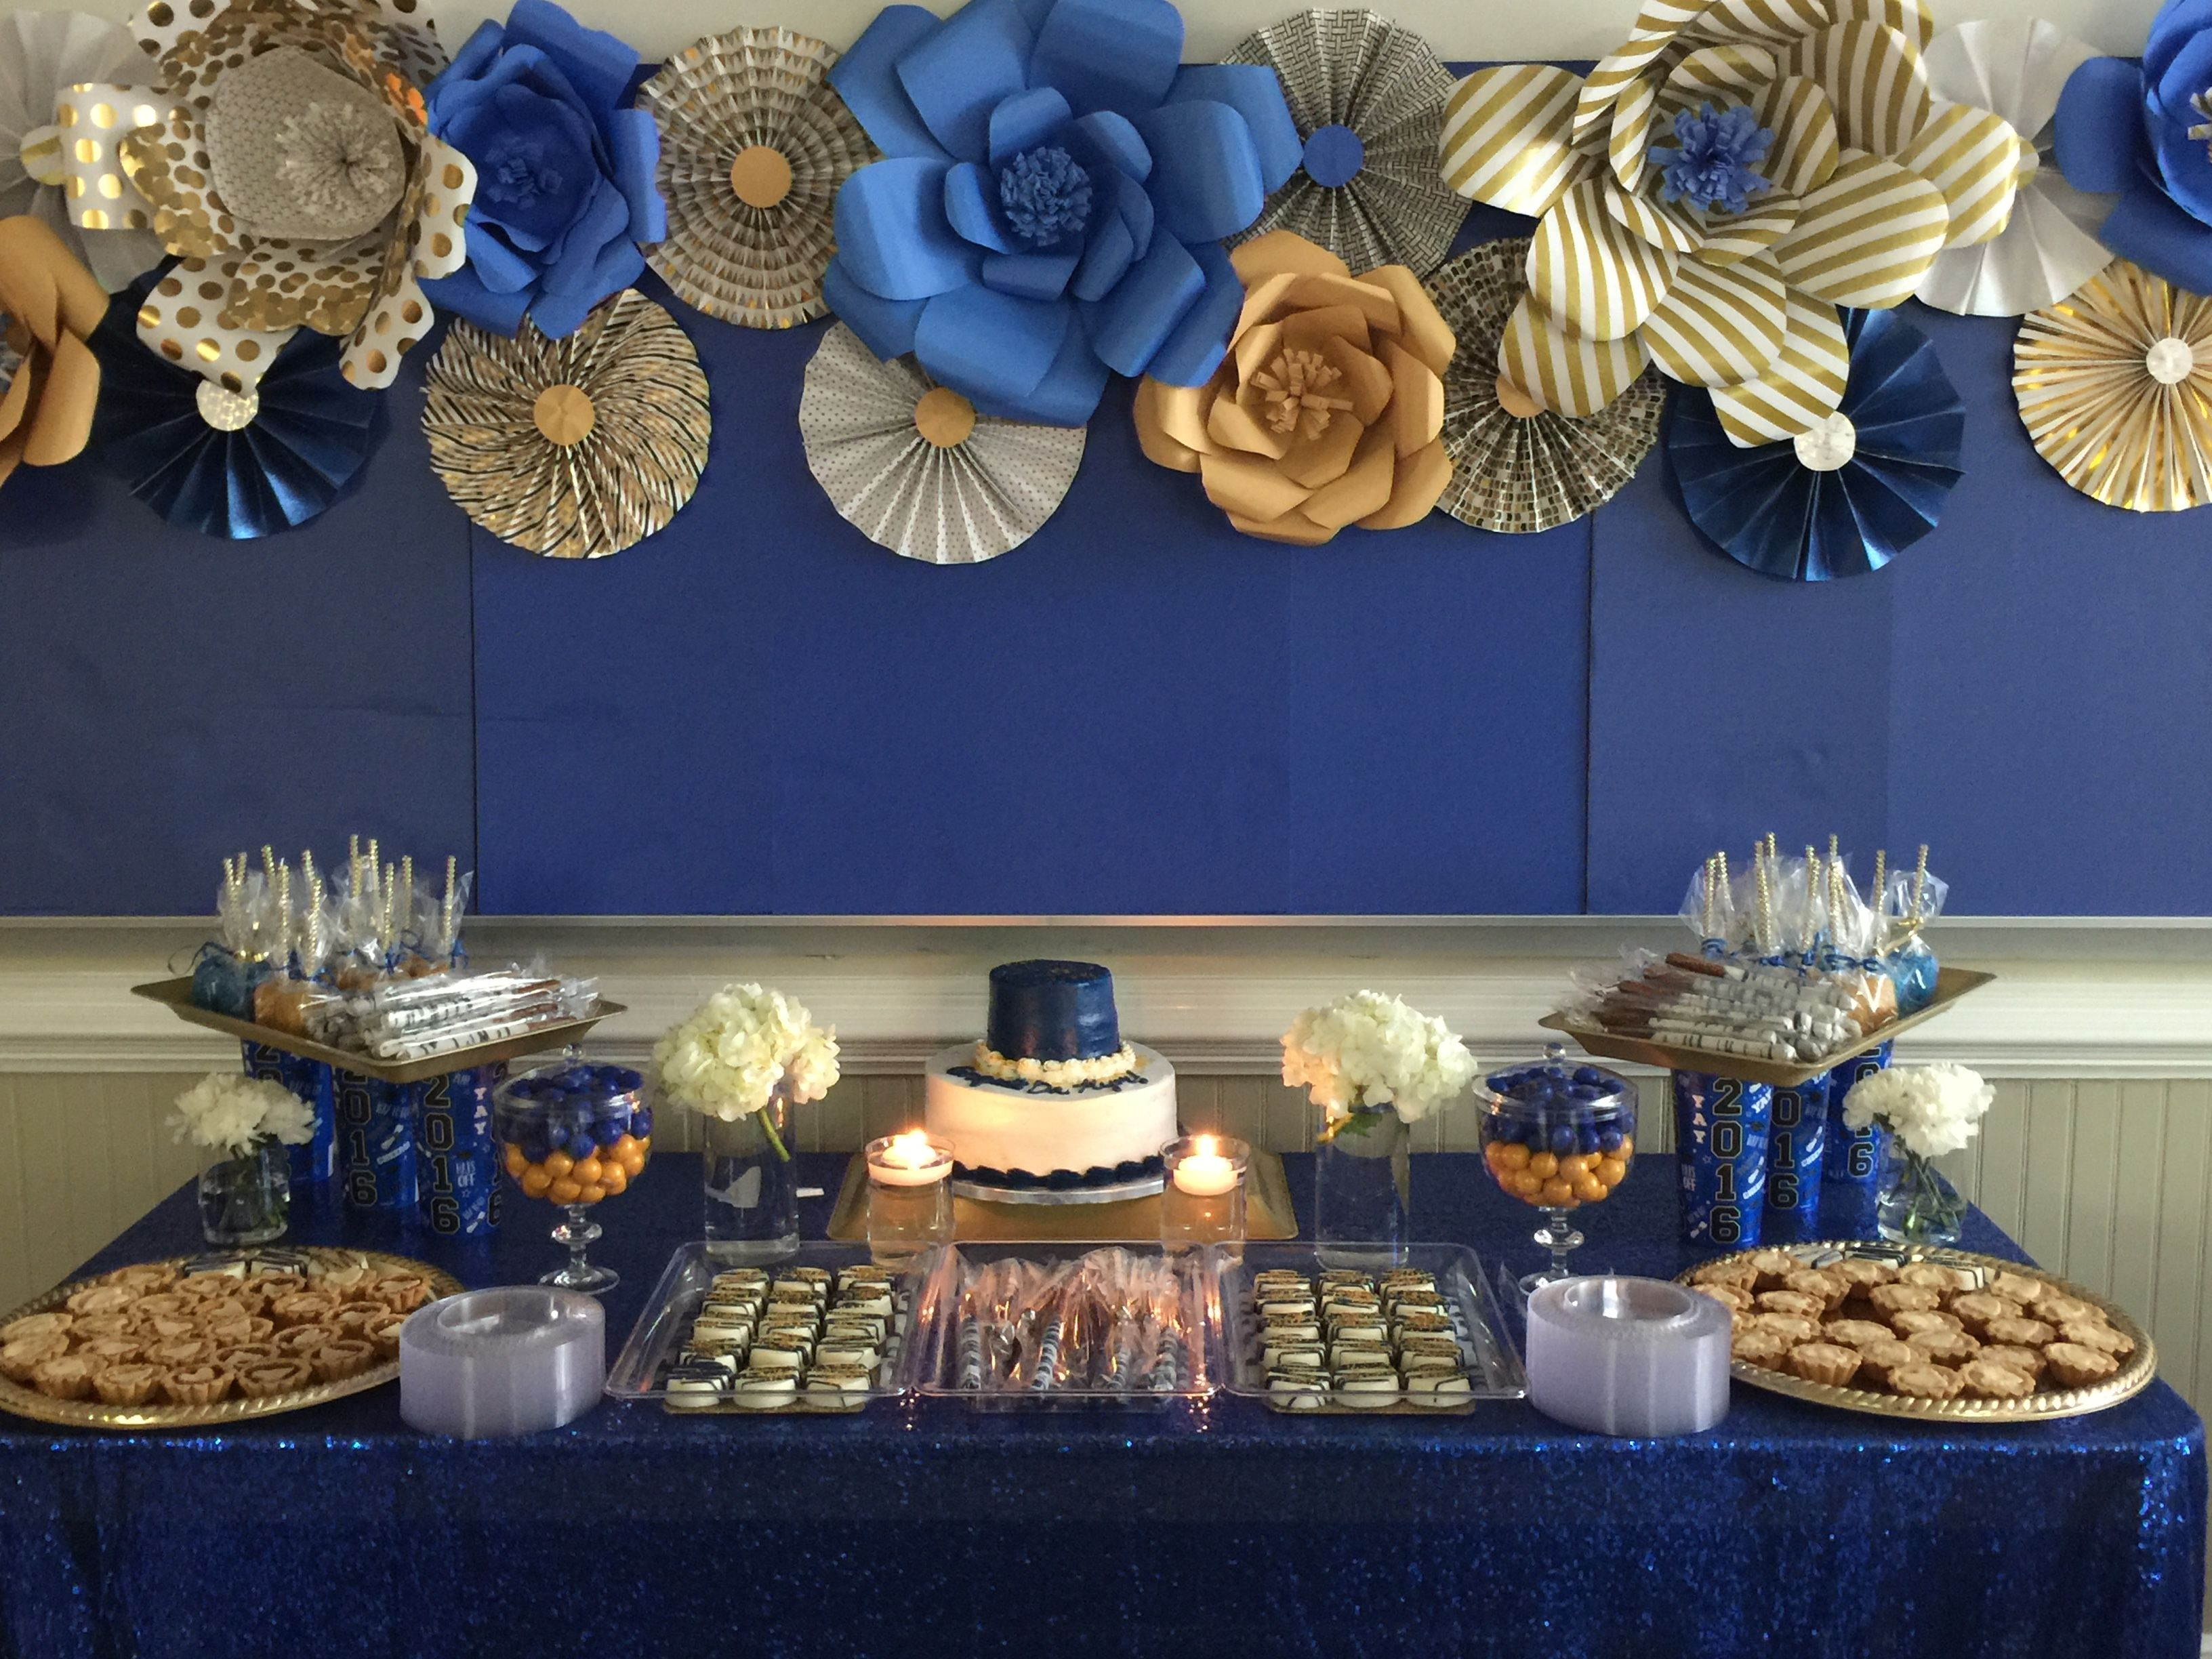 Royal blue and gold dessert table with paper flowers